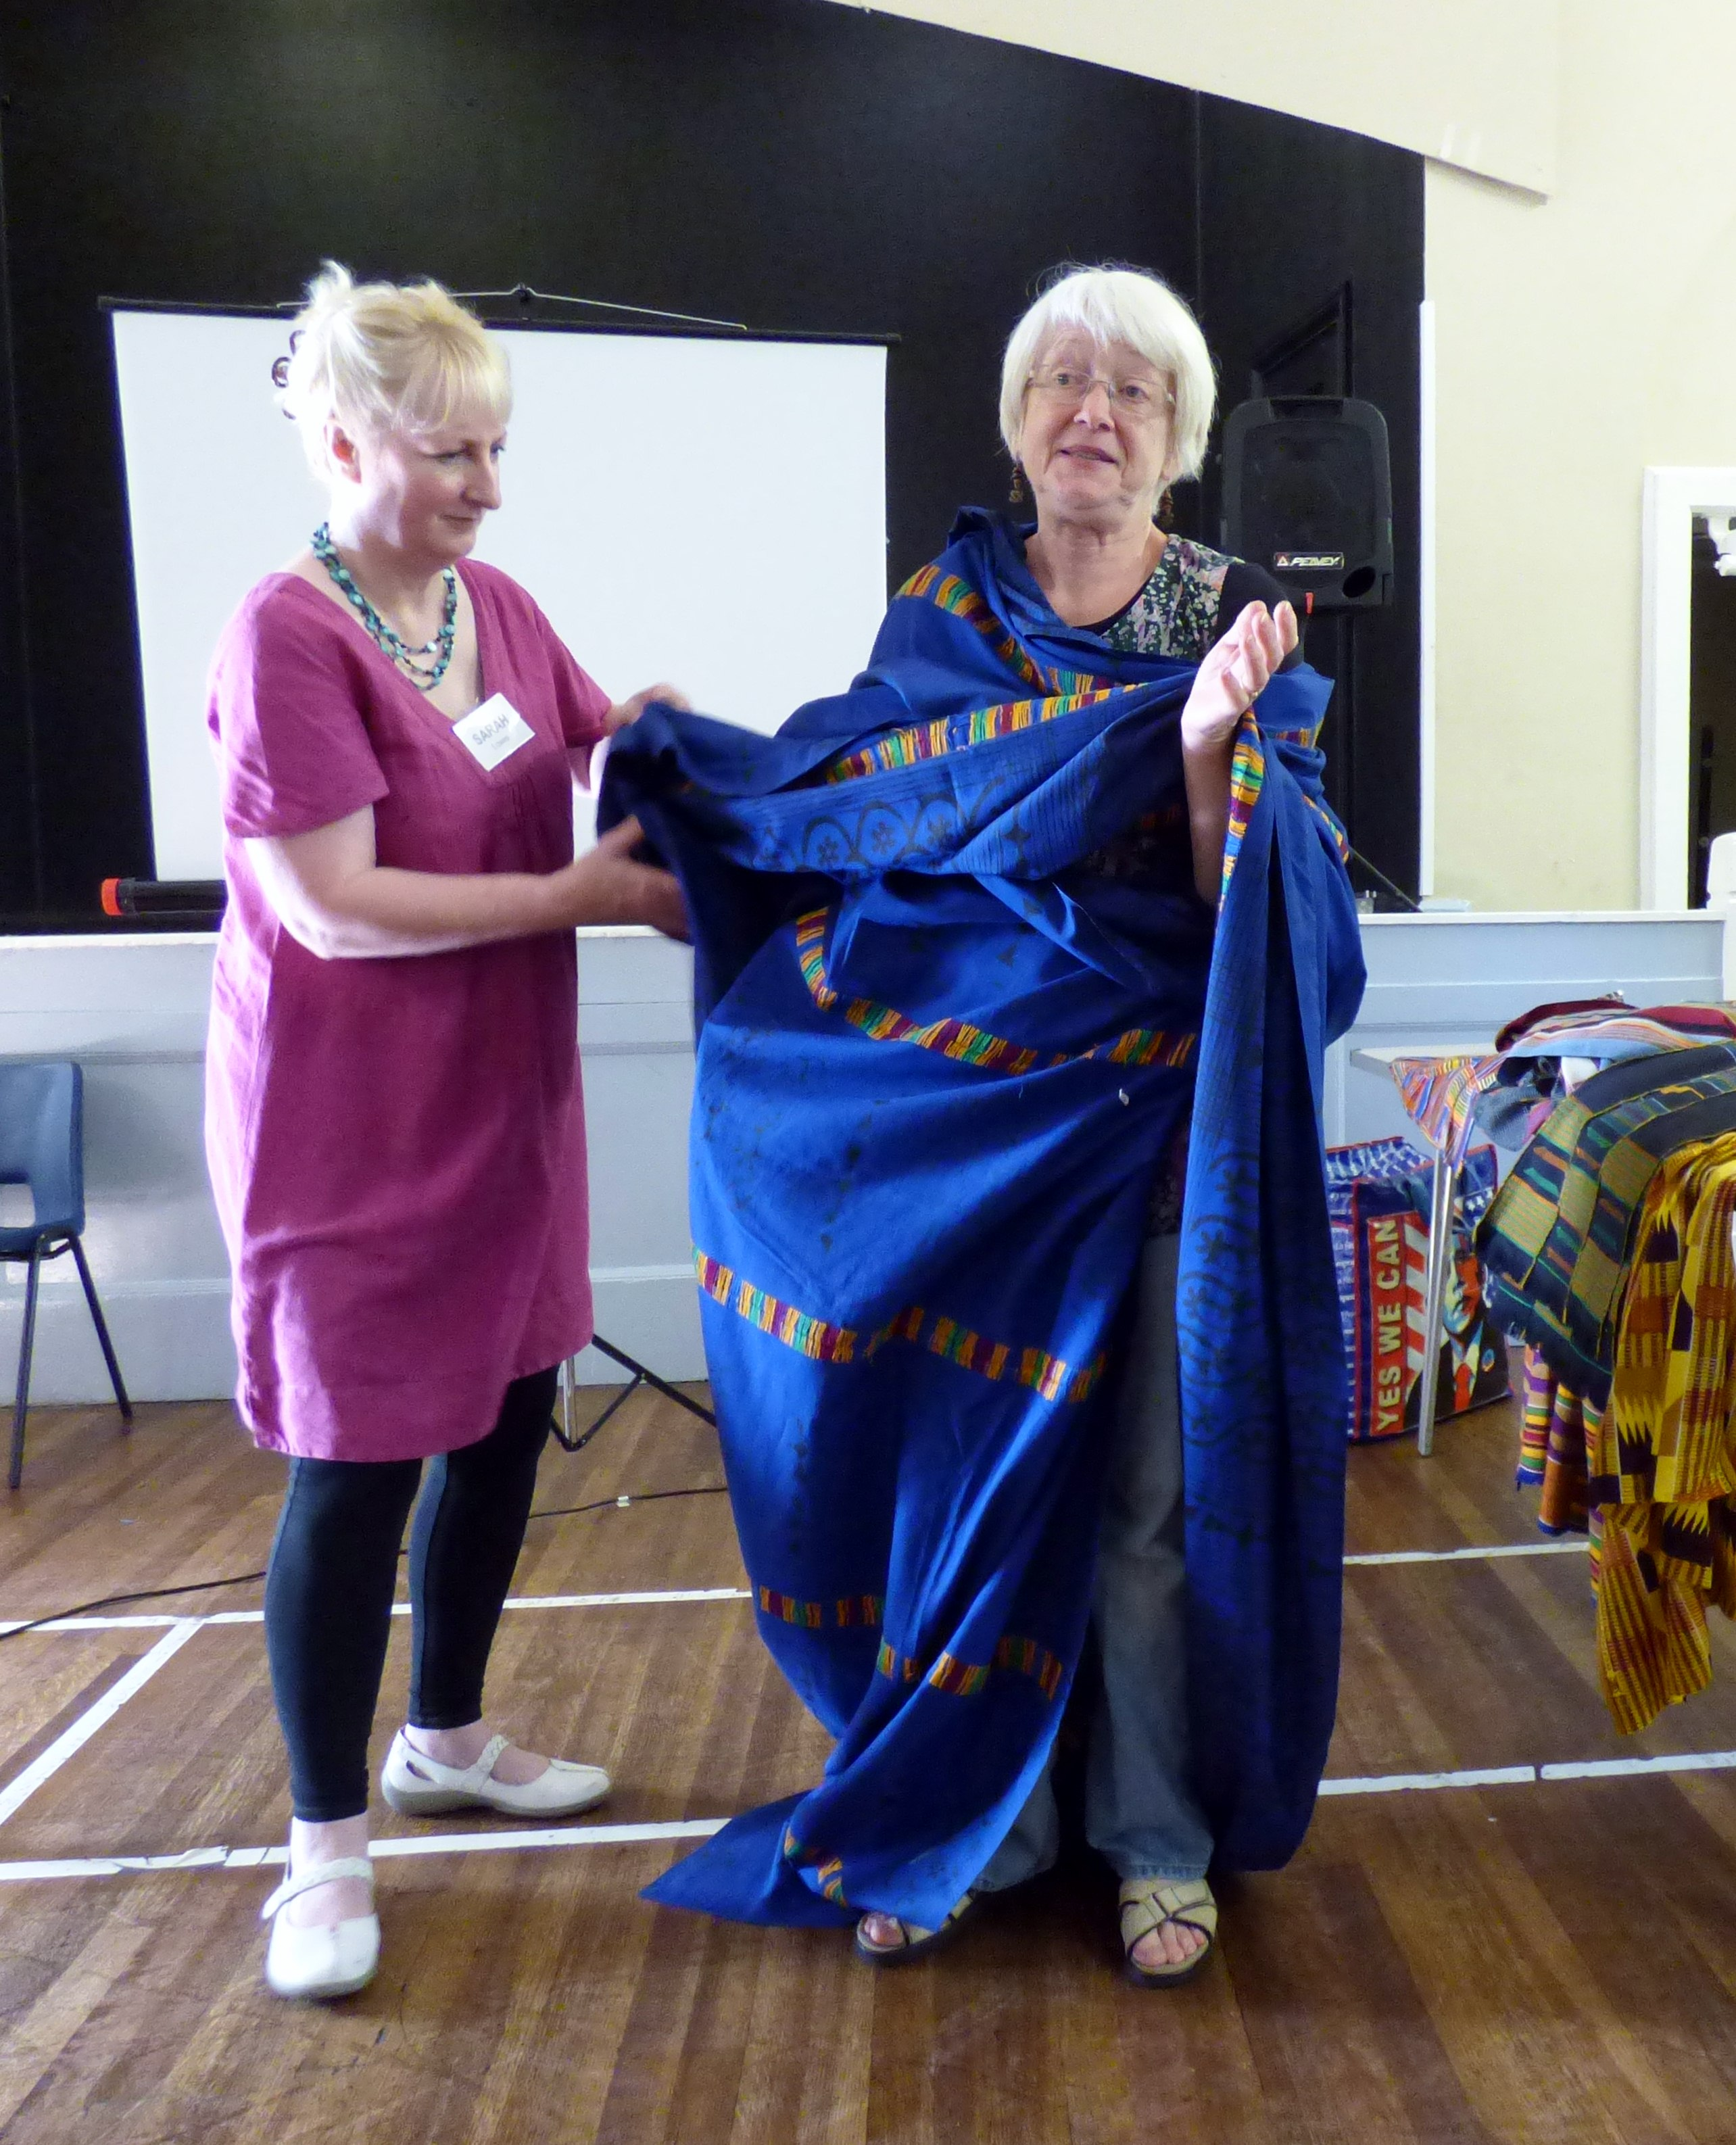 Magi Relph wearing a West African robe assisted by Sarah Lowes